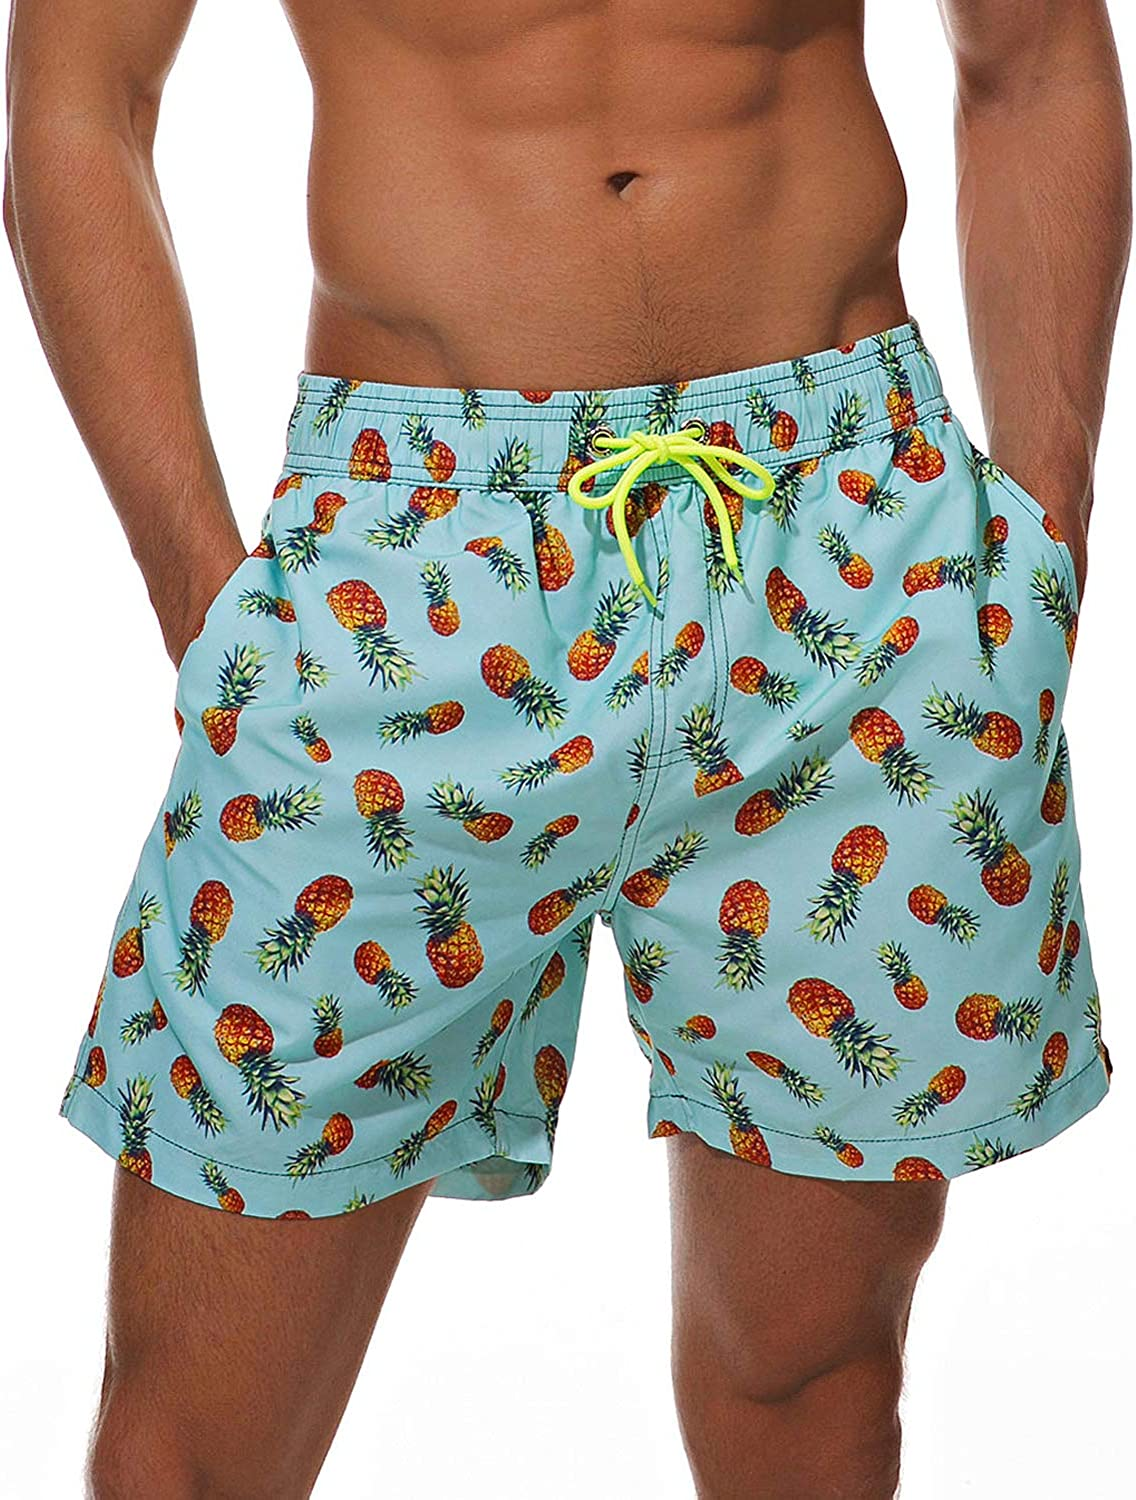 WEVIAS Mens Short Swim Trunks Best Board Shorts for Sports Running Swimming Beach Surfing Quick Dry Breathable Mesh Lining